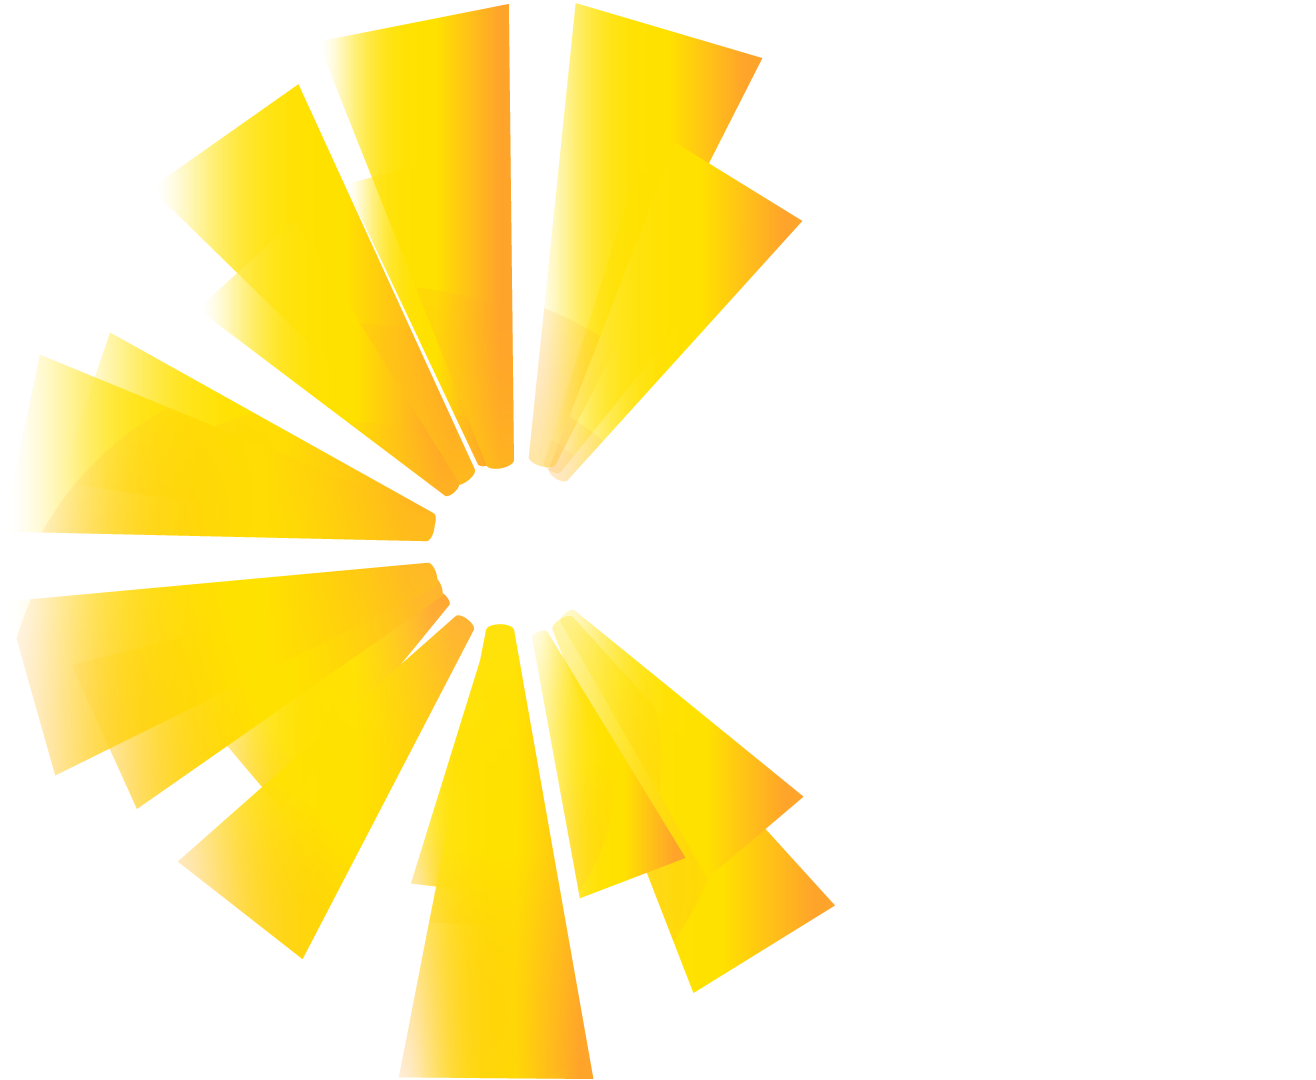 Women Light The World